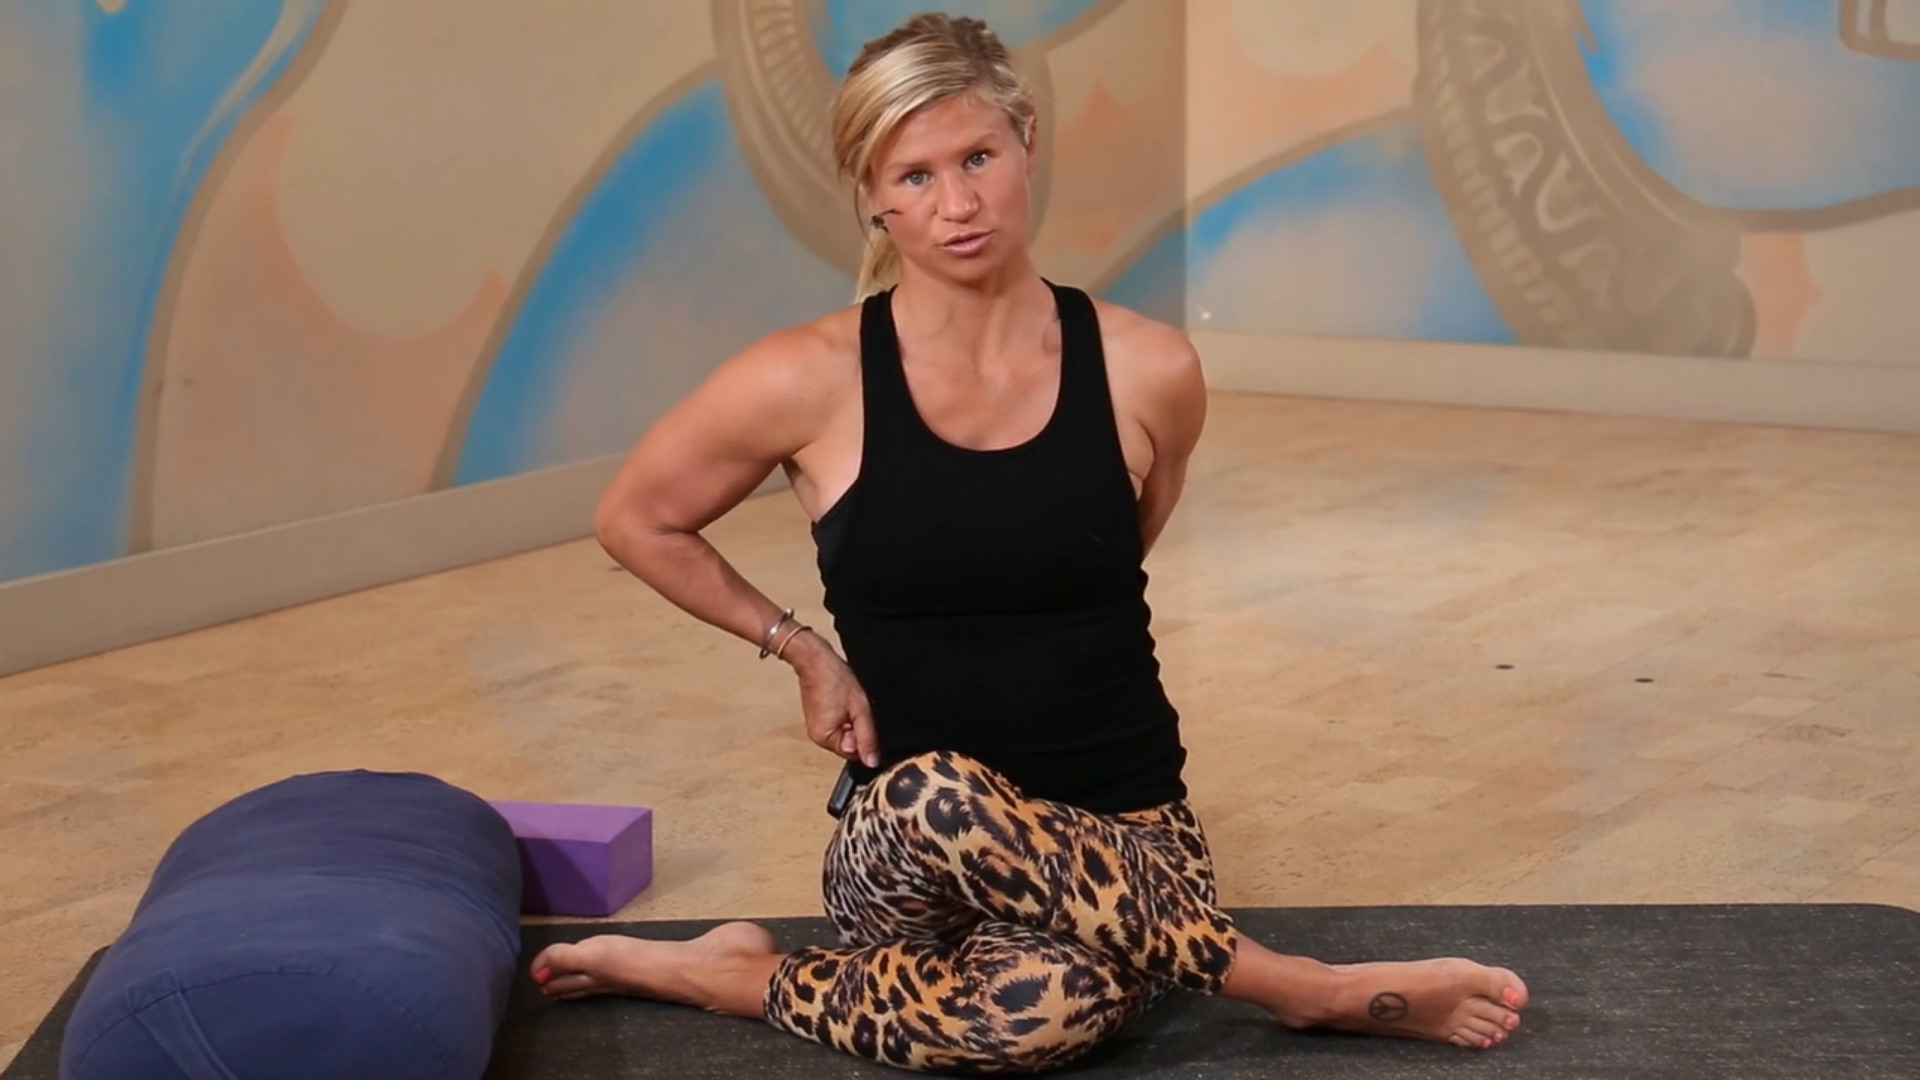 post work out wind down Shauna Hawkes YOGAHOLICS power living australia yoga online yin